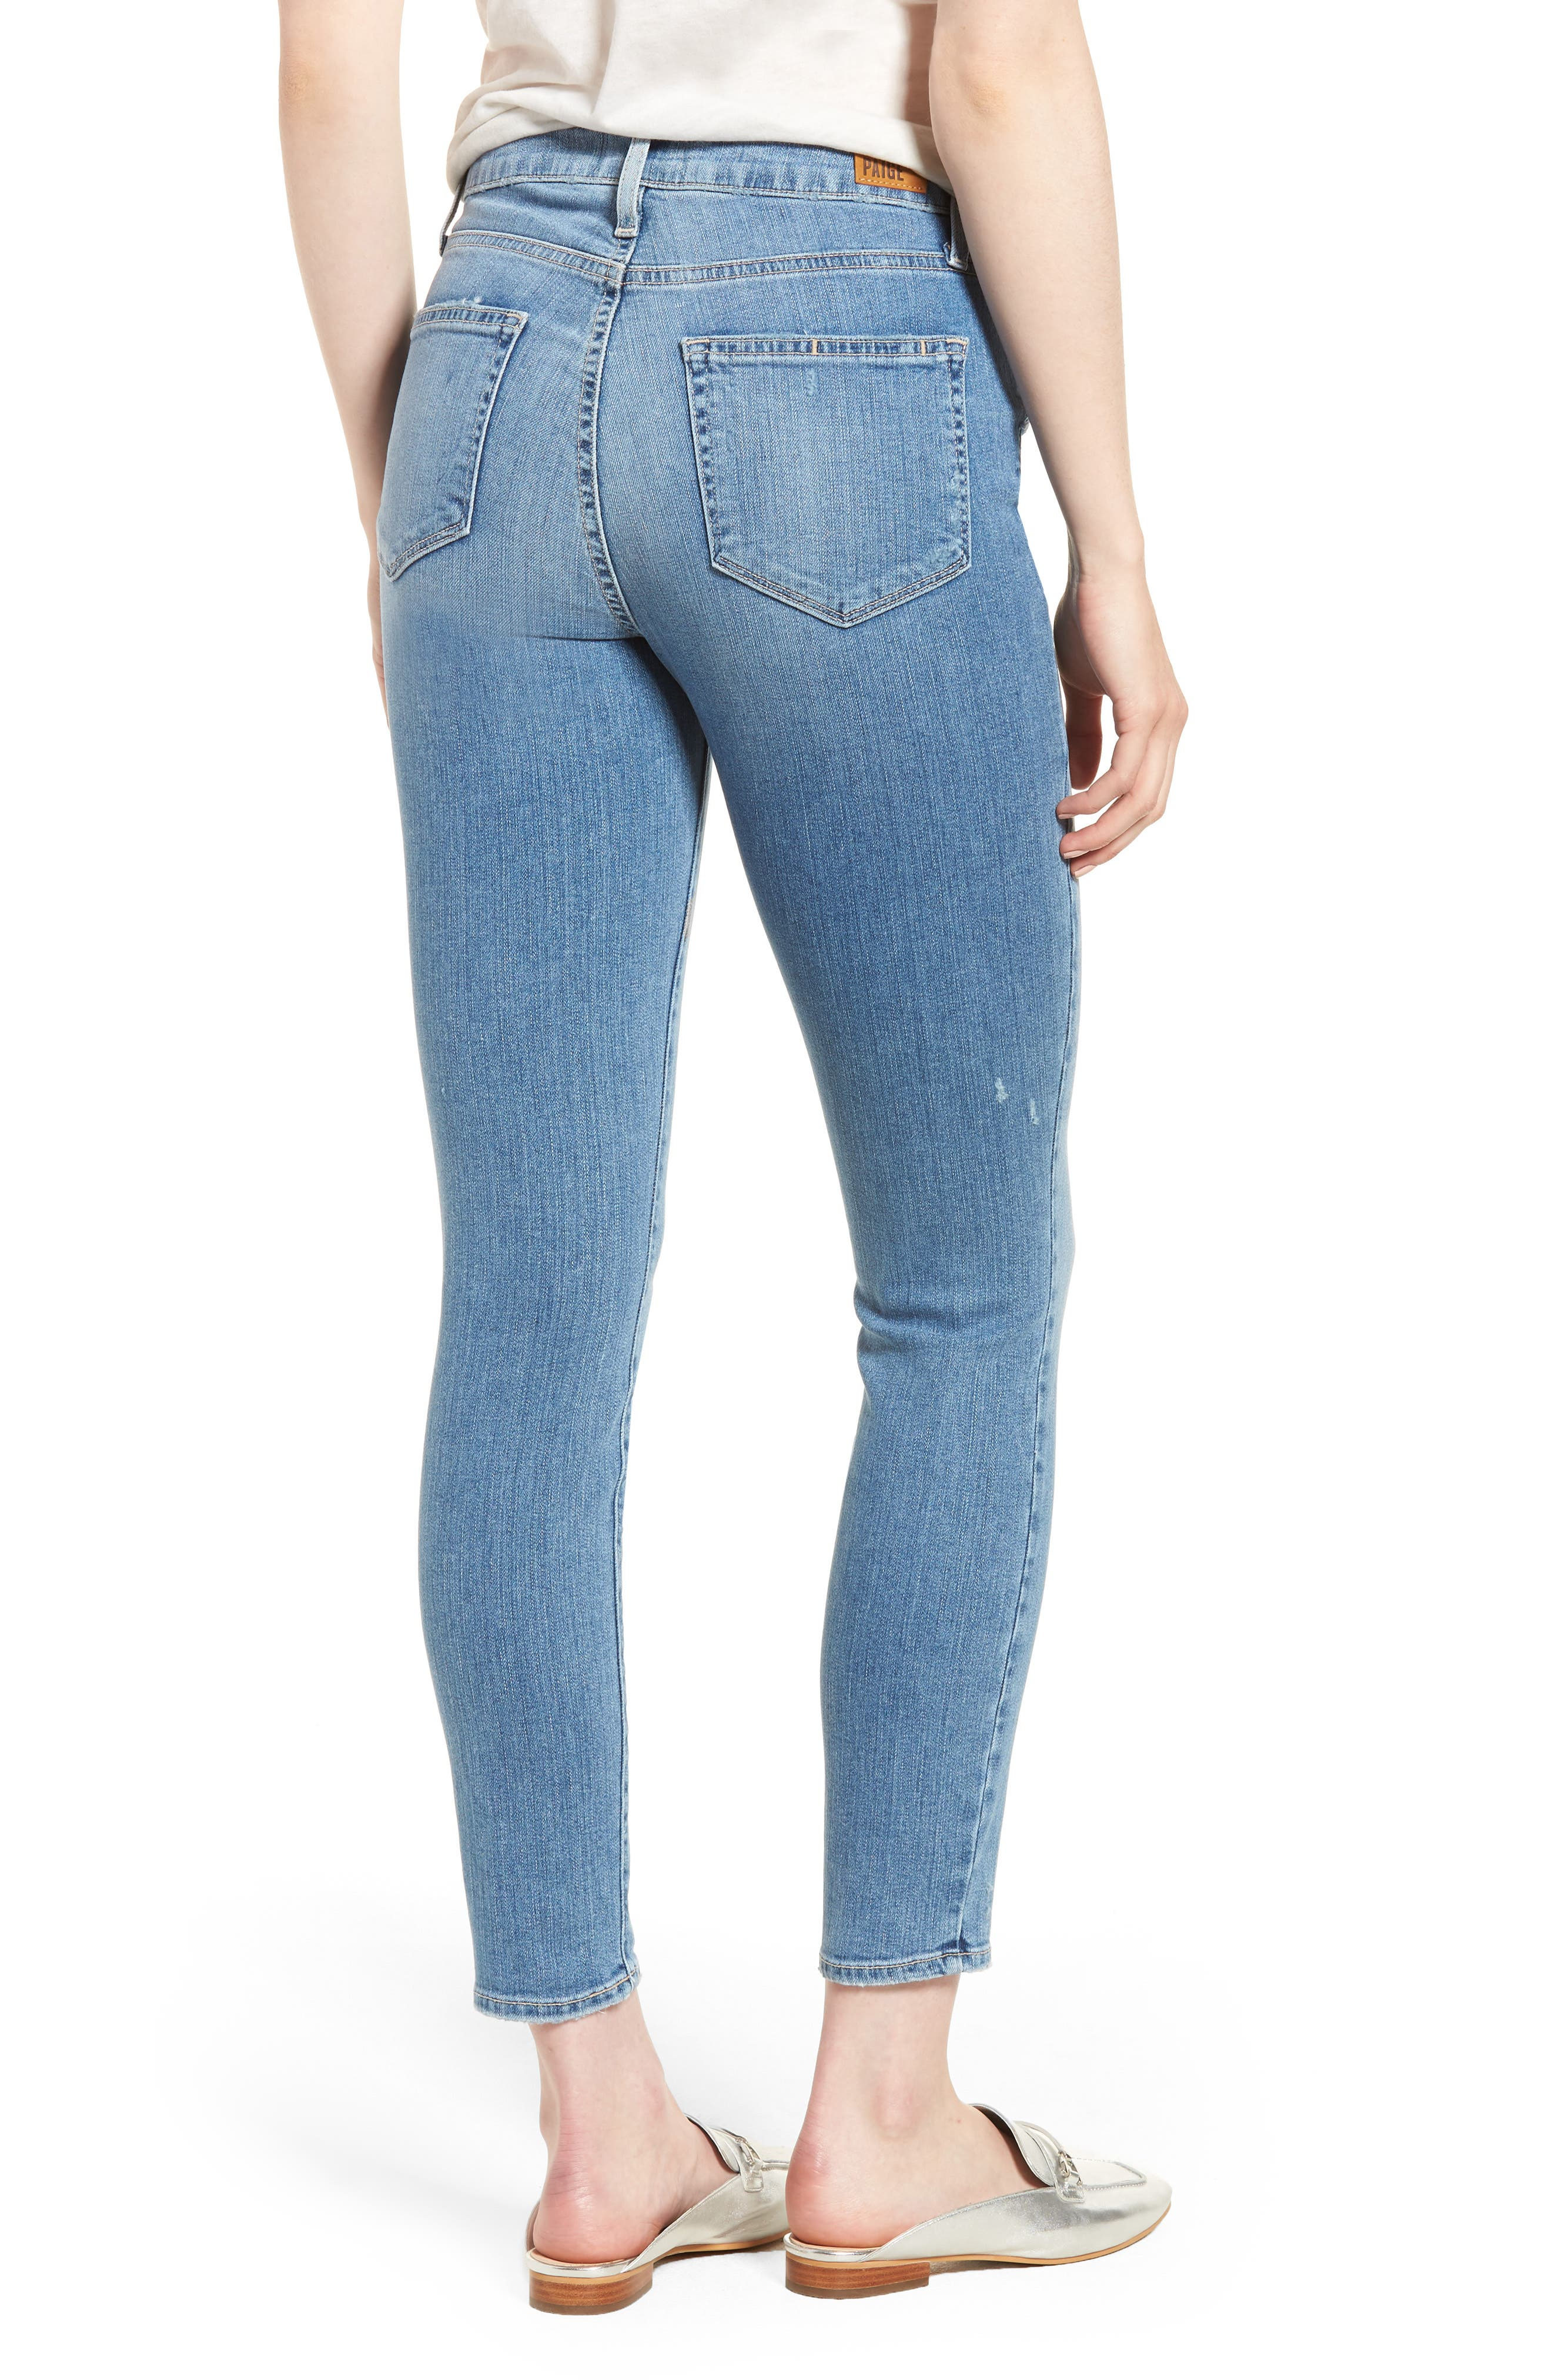 Hoxton Distressed Ankle Jeans,                             Alternate thumbnail 2, color,                             400